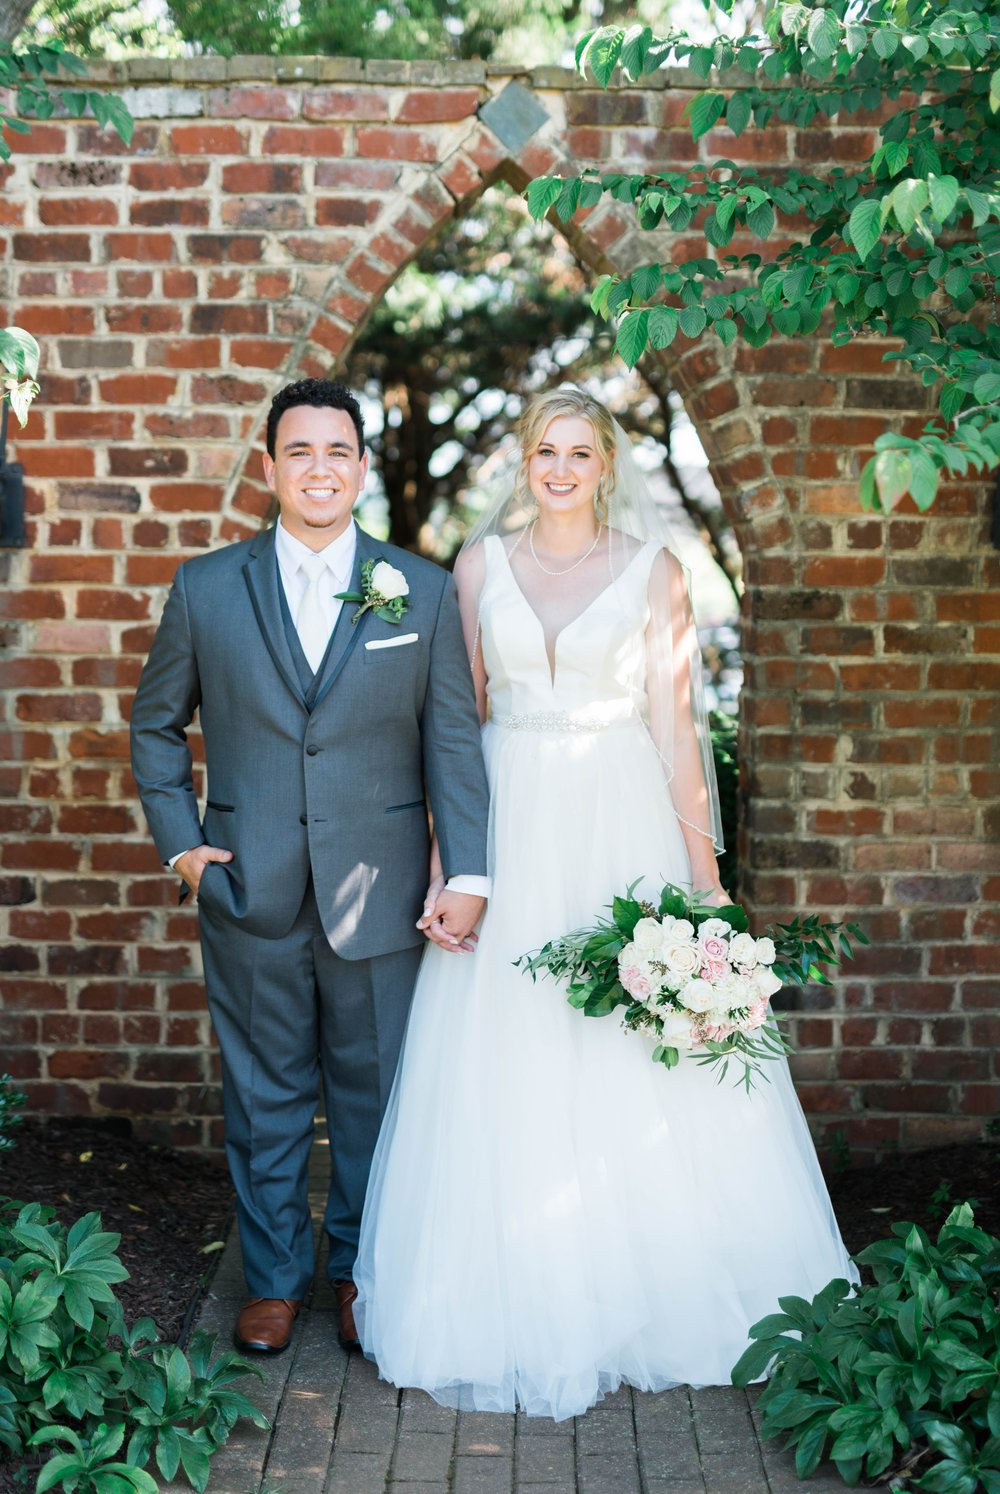 westmanorestate_entwinedevents_lynchburgweddingphotographer_Virginiaweddingphotographer_kateyam 41.jpg